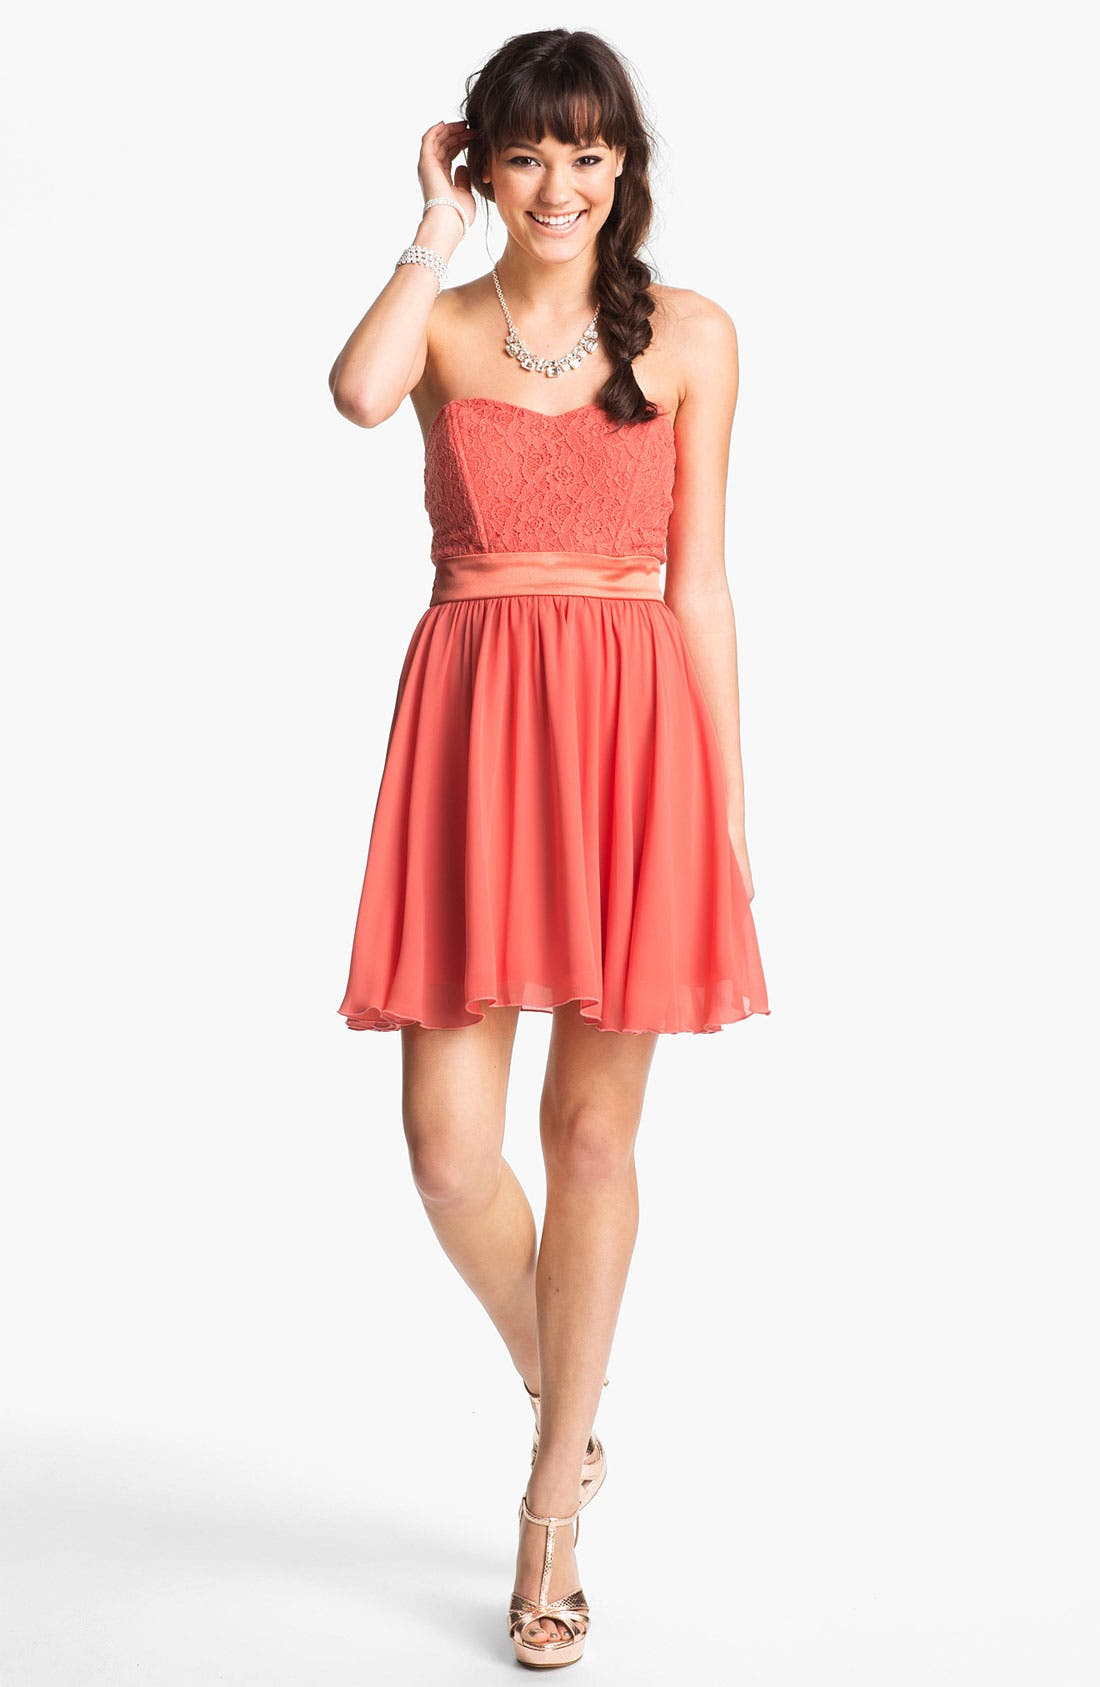 Alternate Image 1 Selected - Trixxi Lace & Chiffon Strapless Party Dress (Juniors)